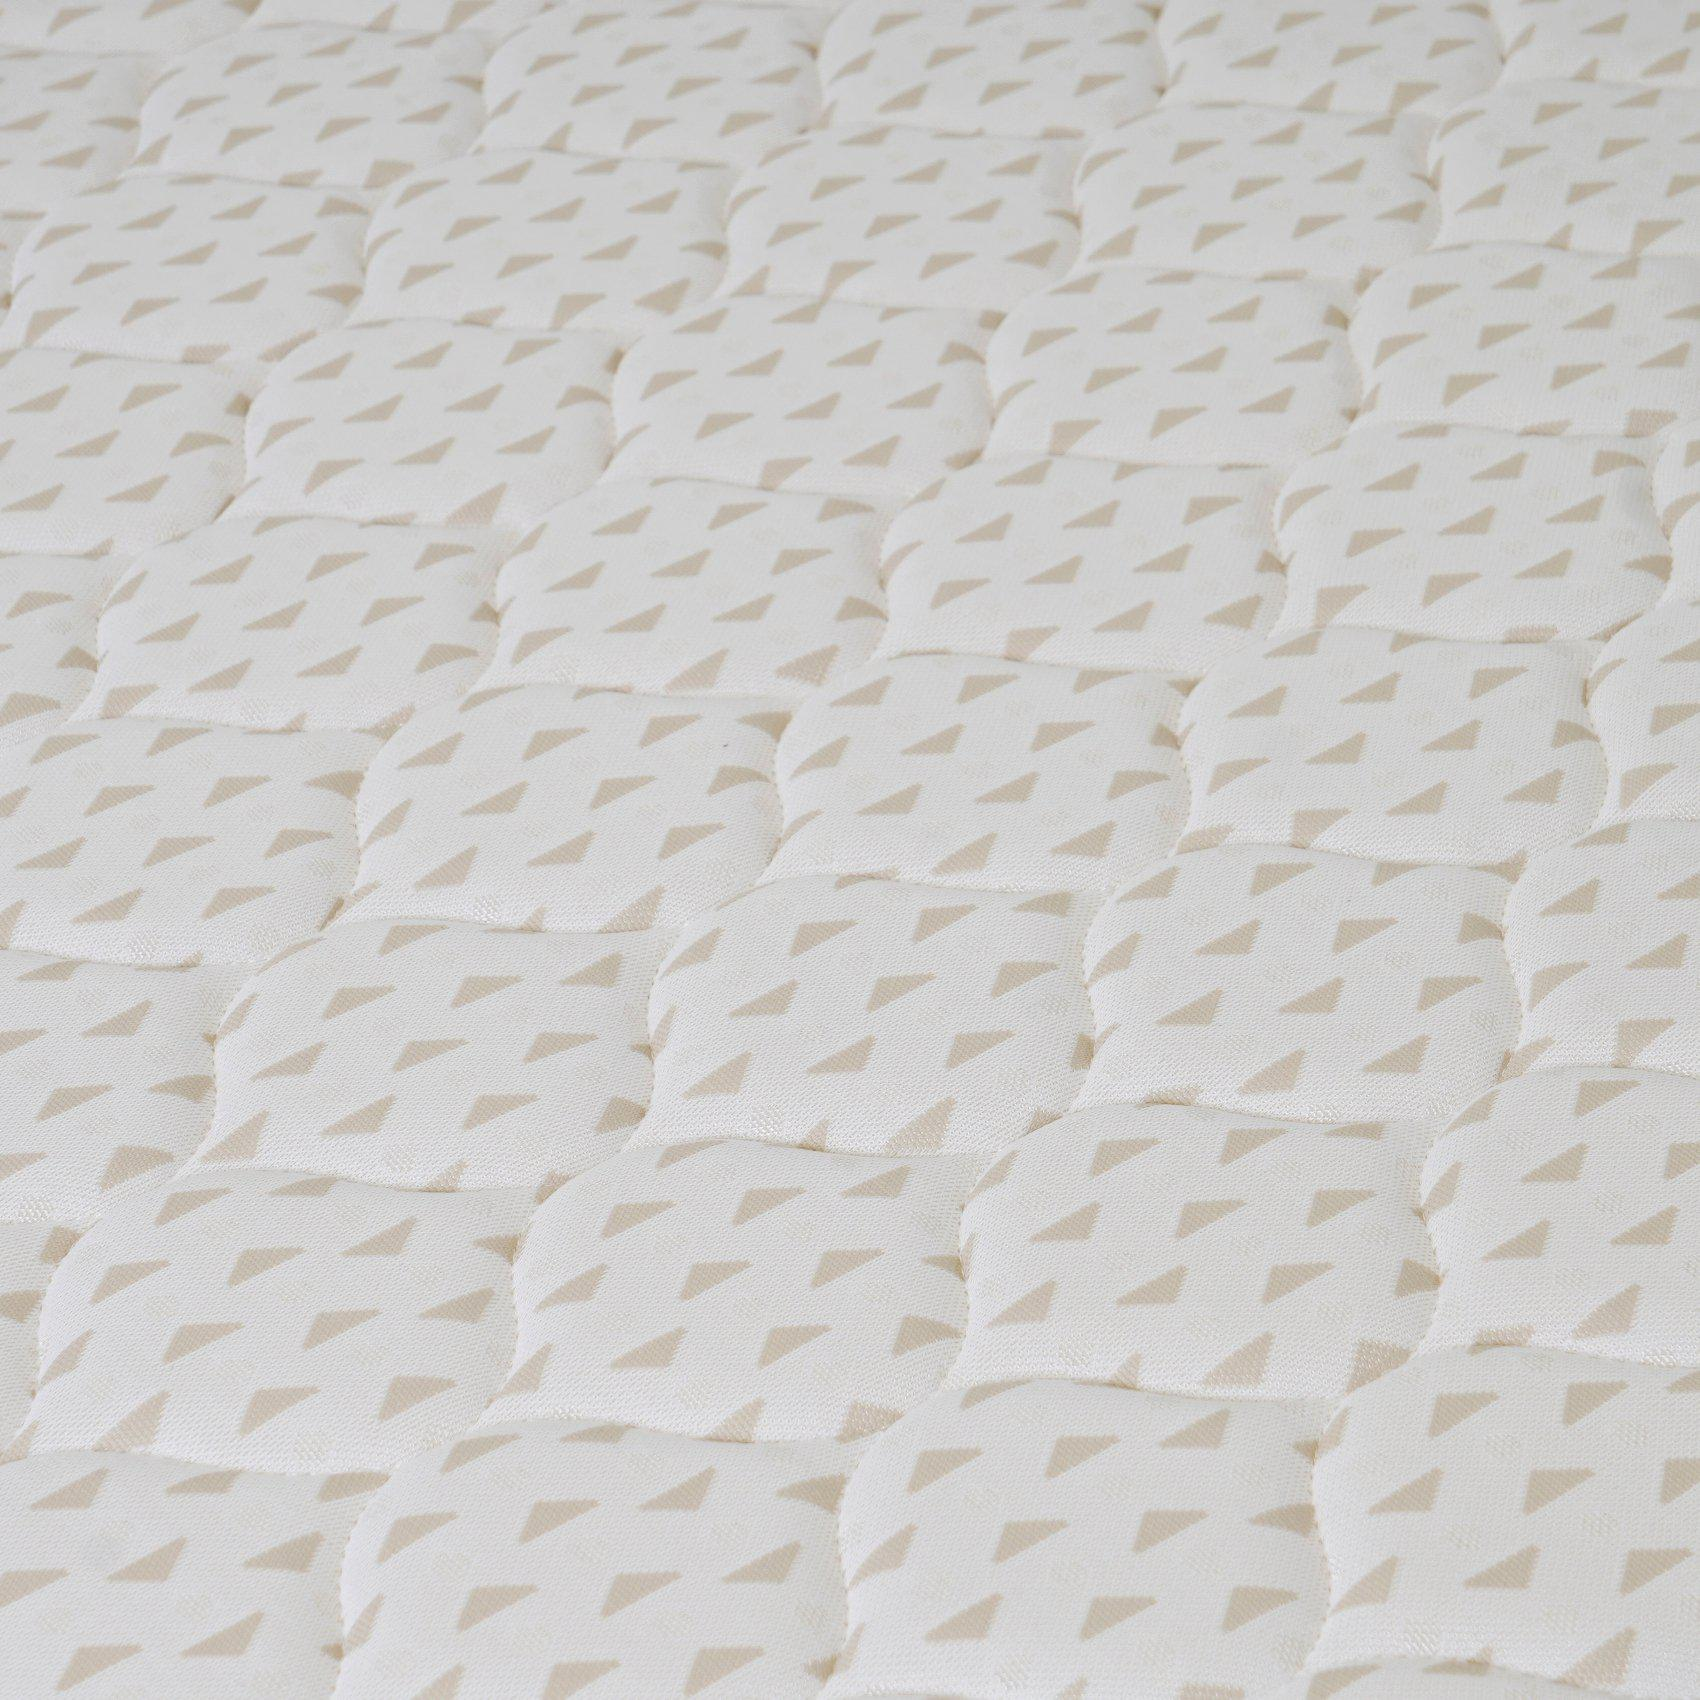 Slumber Rebonded Foam Mattress